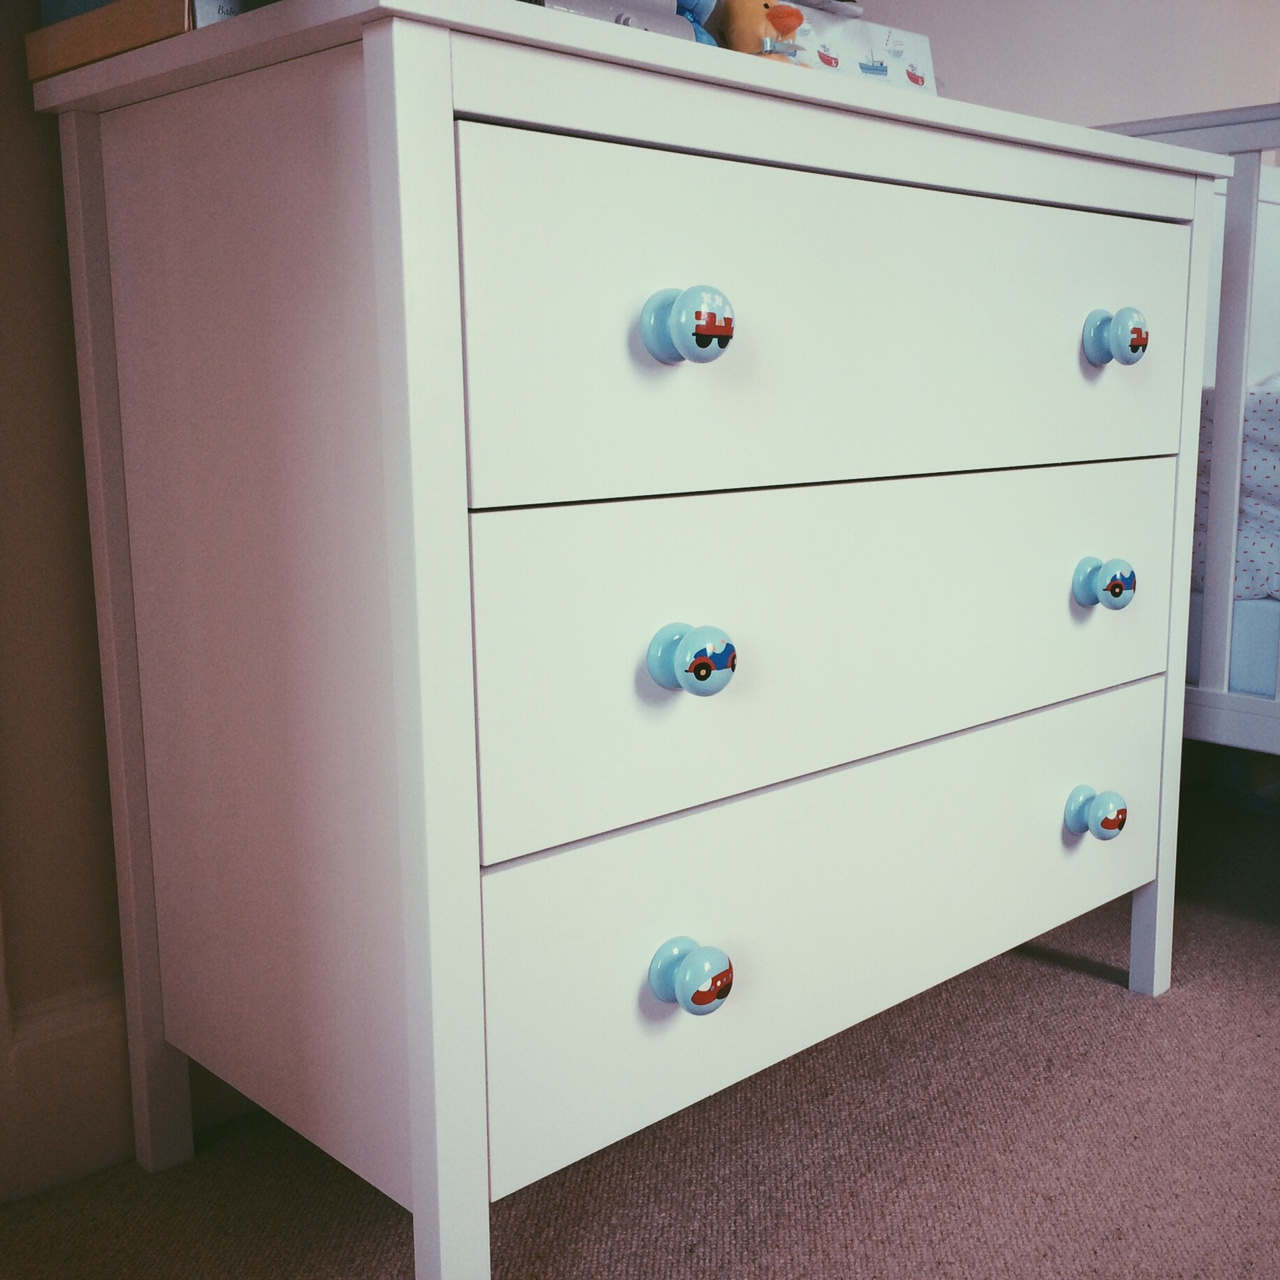 This is the Hensvik kids wardrobe and the Hemnes chest of drawers both by Ikea. The hand painted transport knobs were an Ebay purchase.